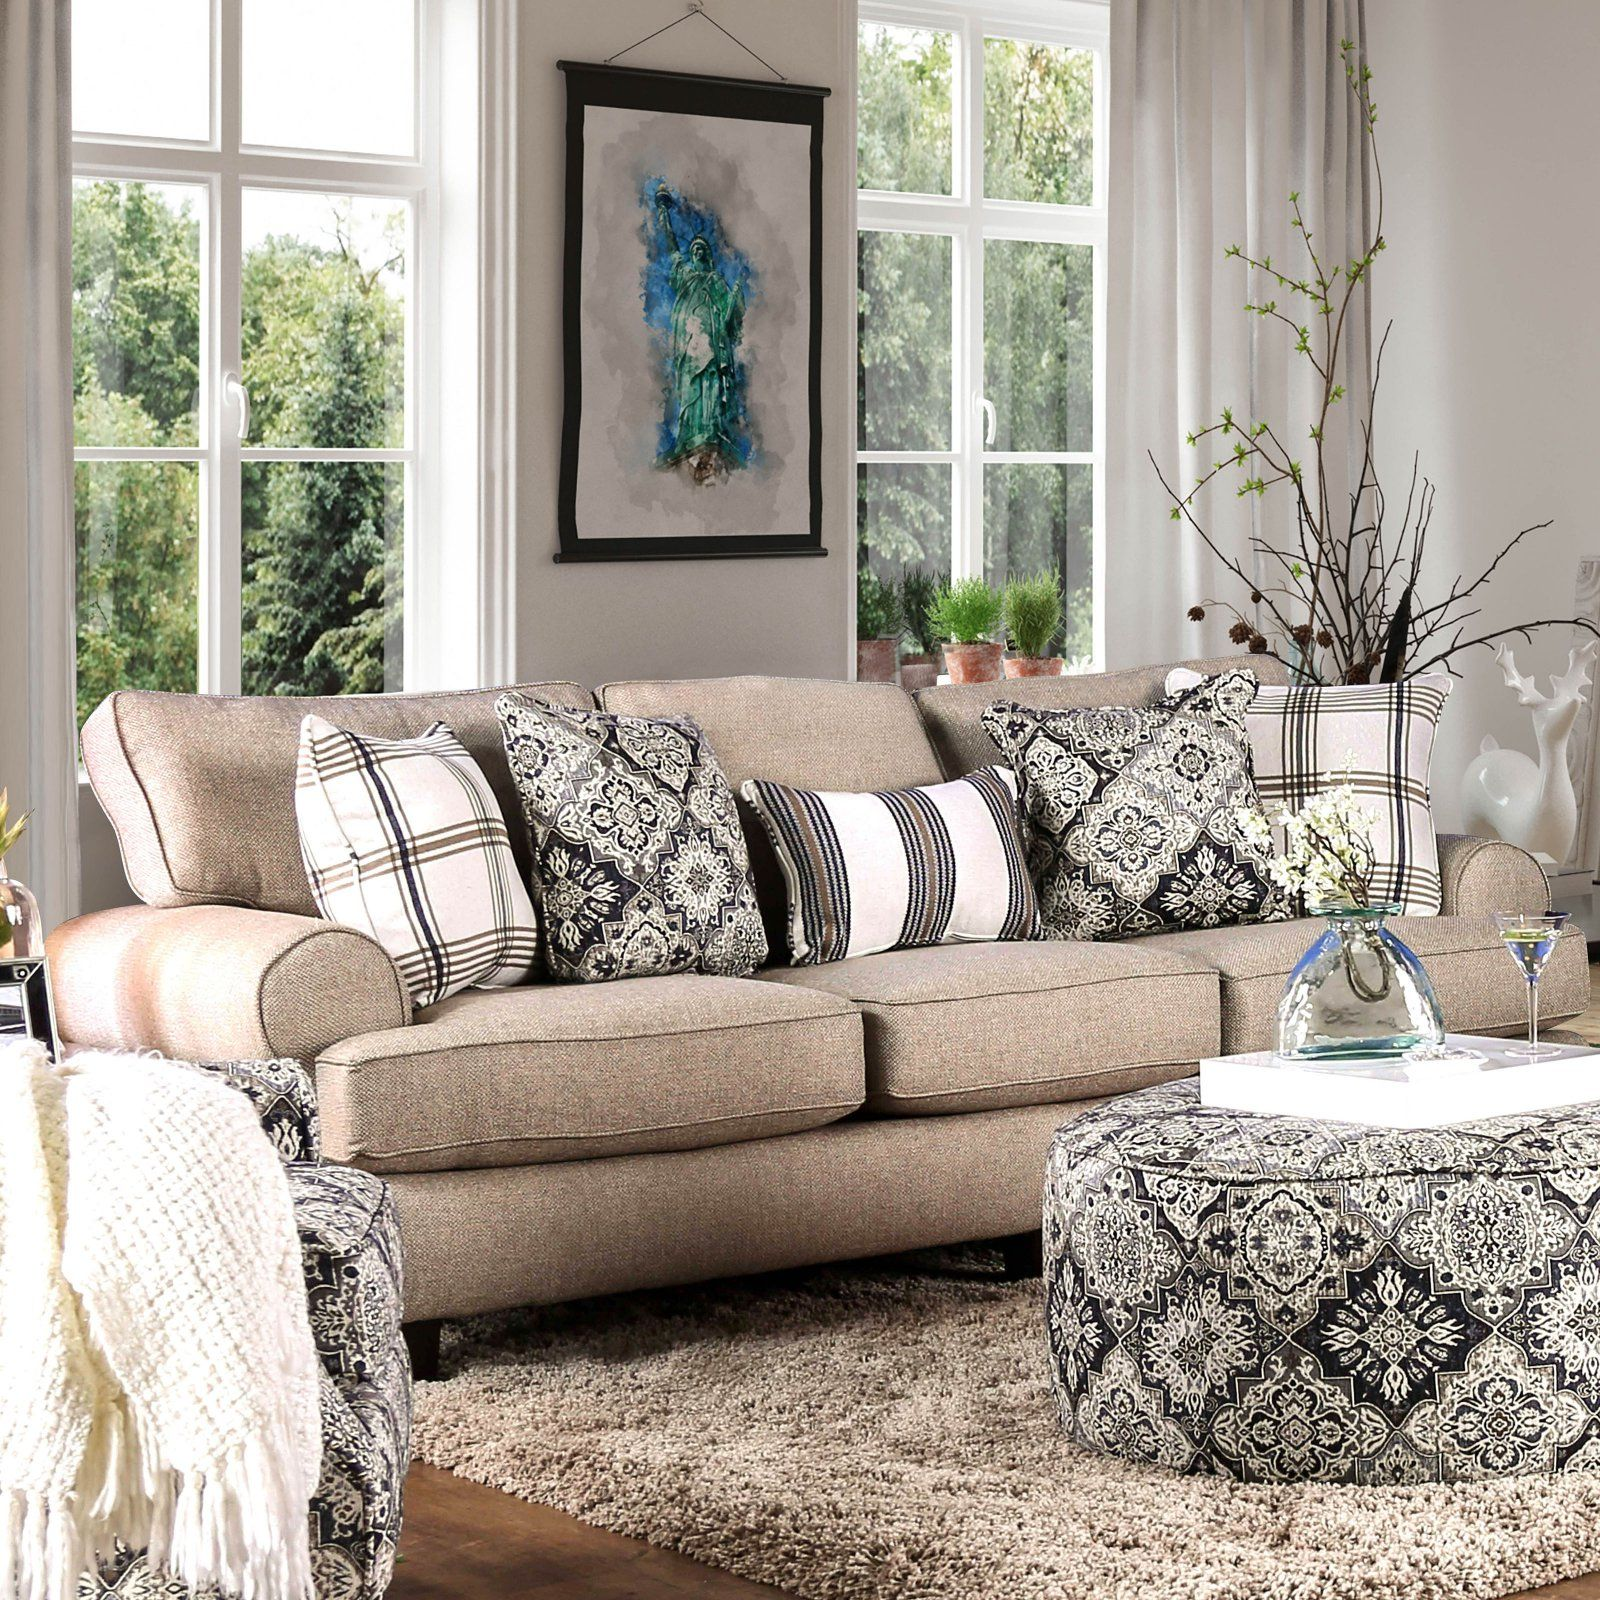 Peachy Furniture Of America Breckenridge Sofa In 2019 Products Gmtry Best Dining Table And Chair Ideas Images Gmtryco